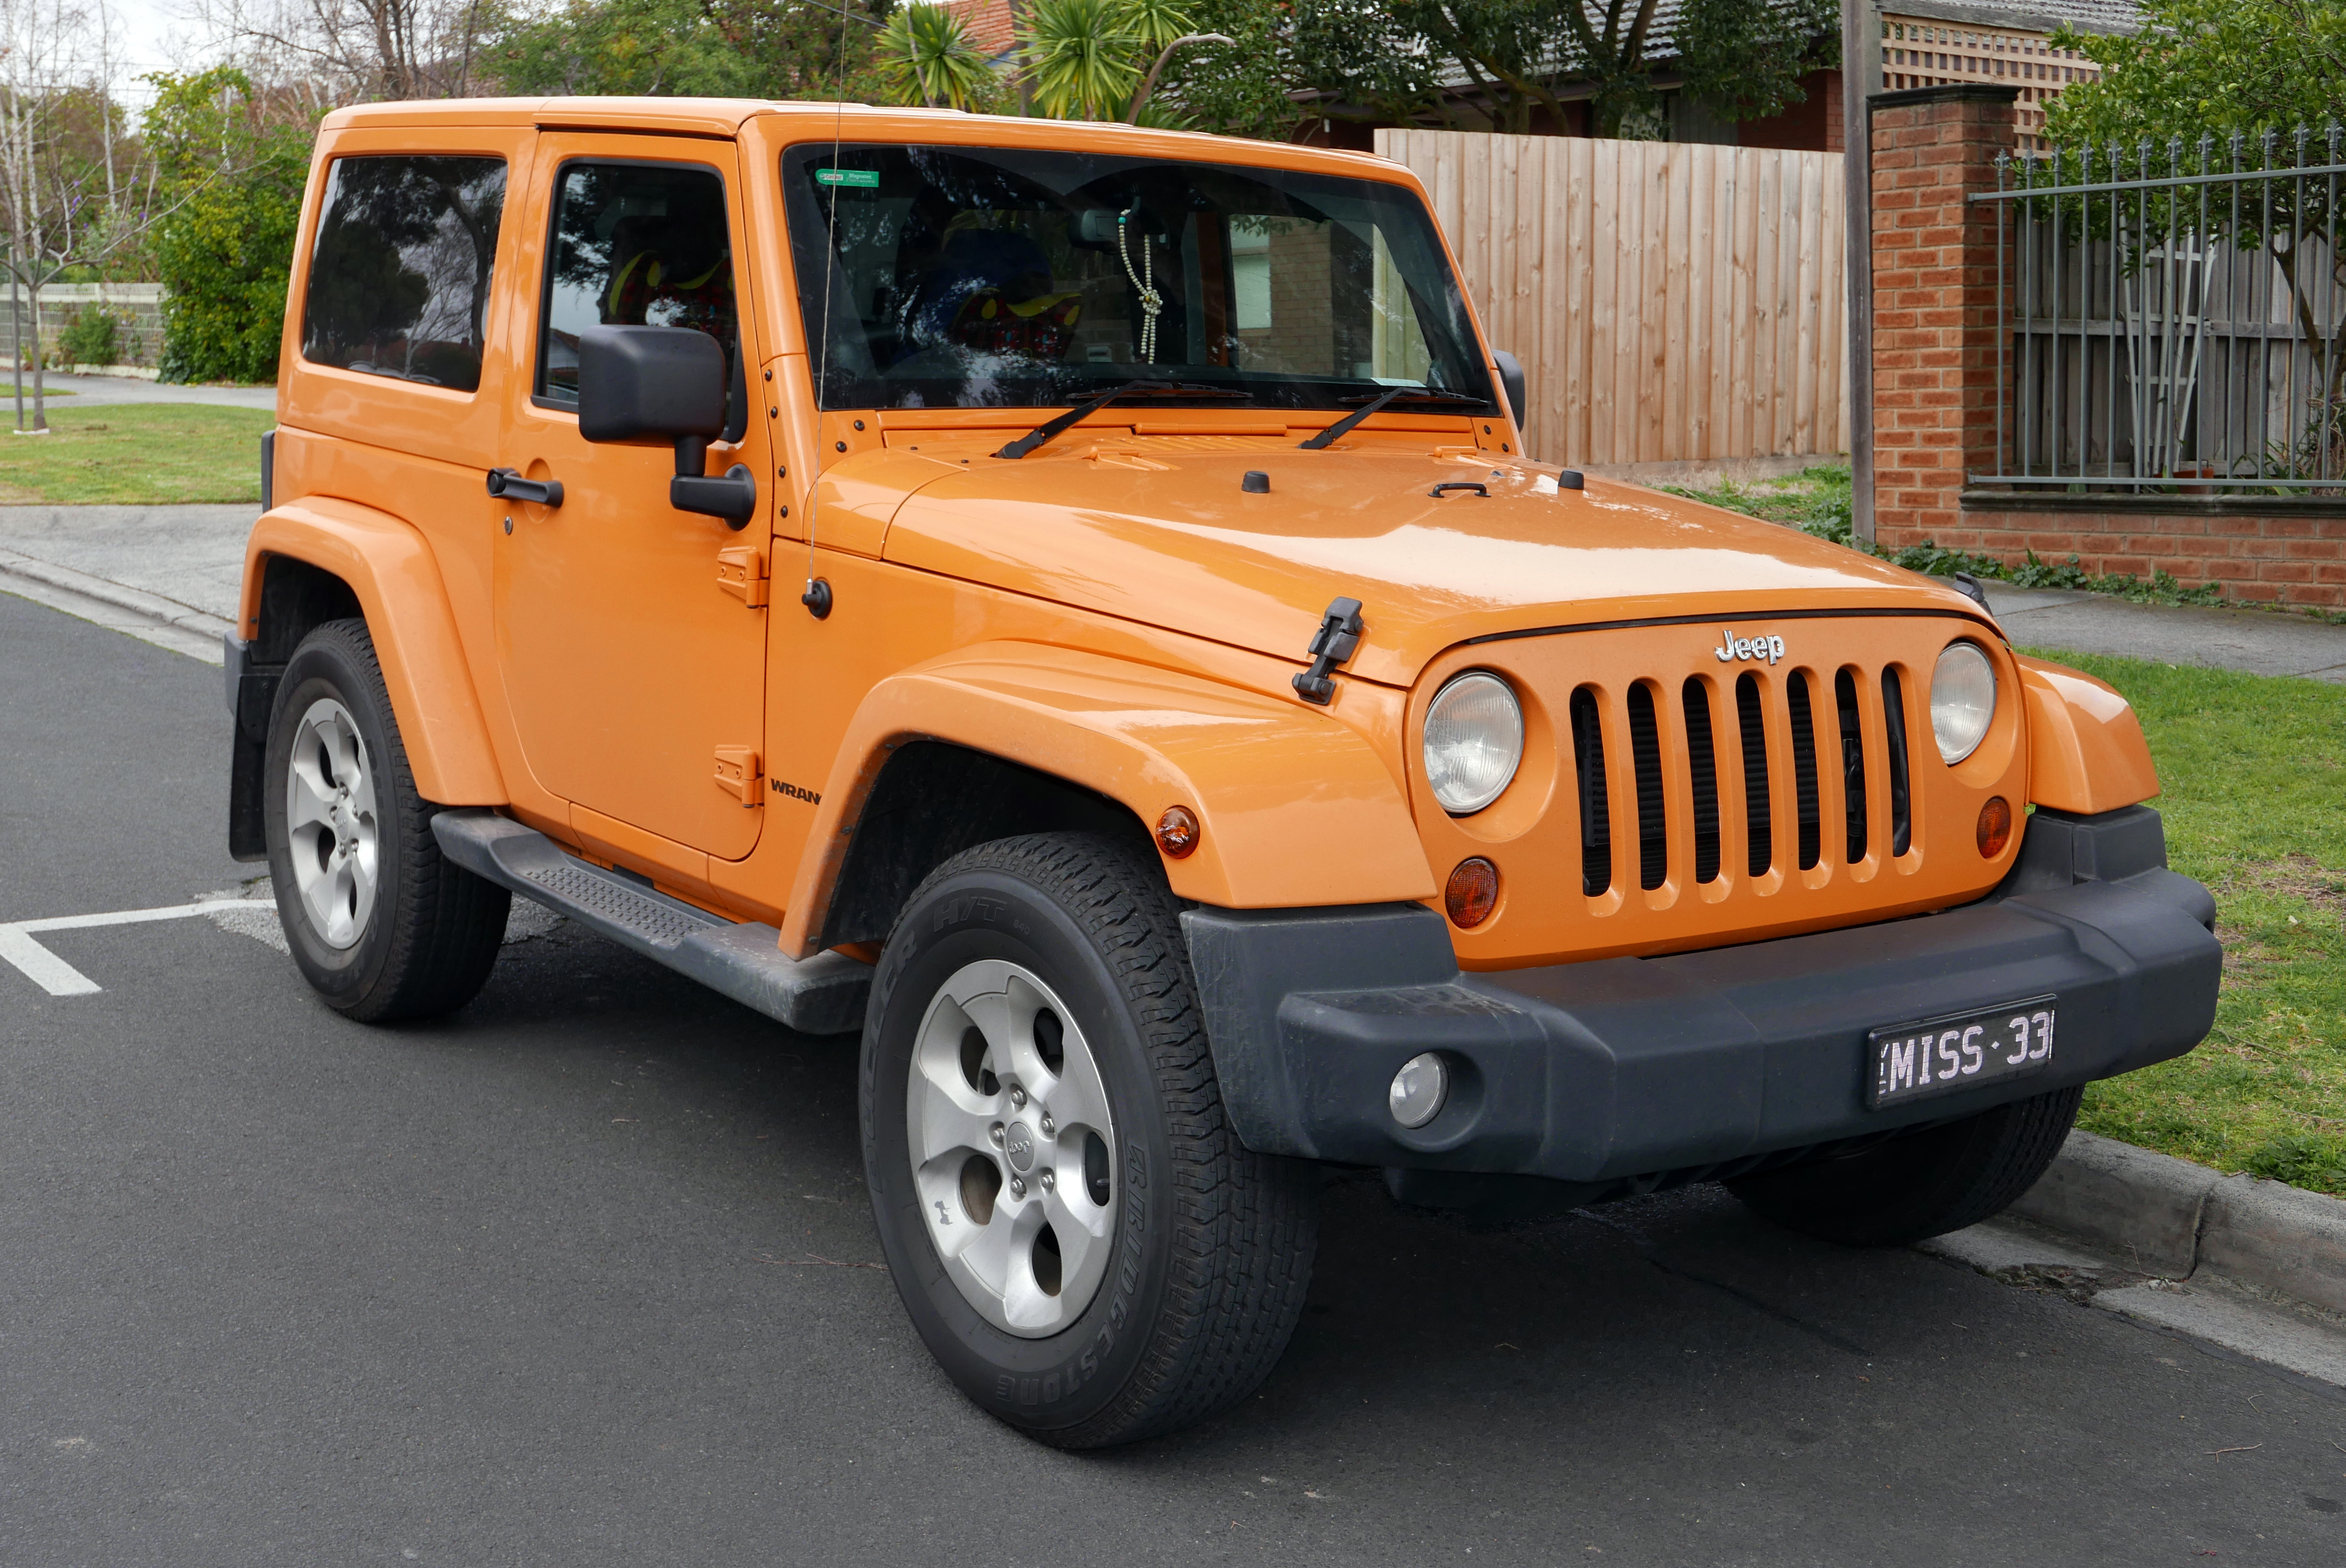 Rent a Jeep Wrangler or similar model for $60 a day (Photo via Google)